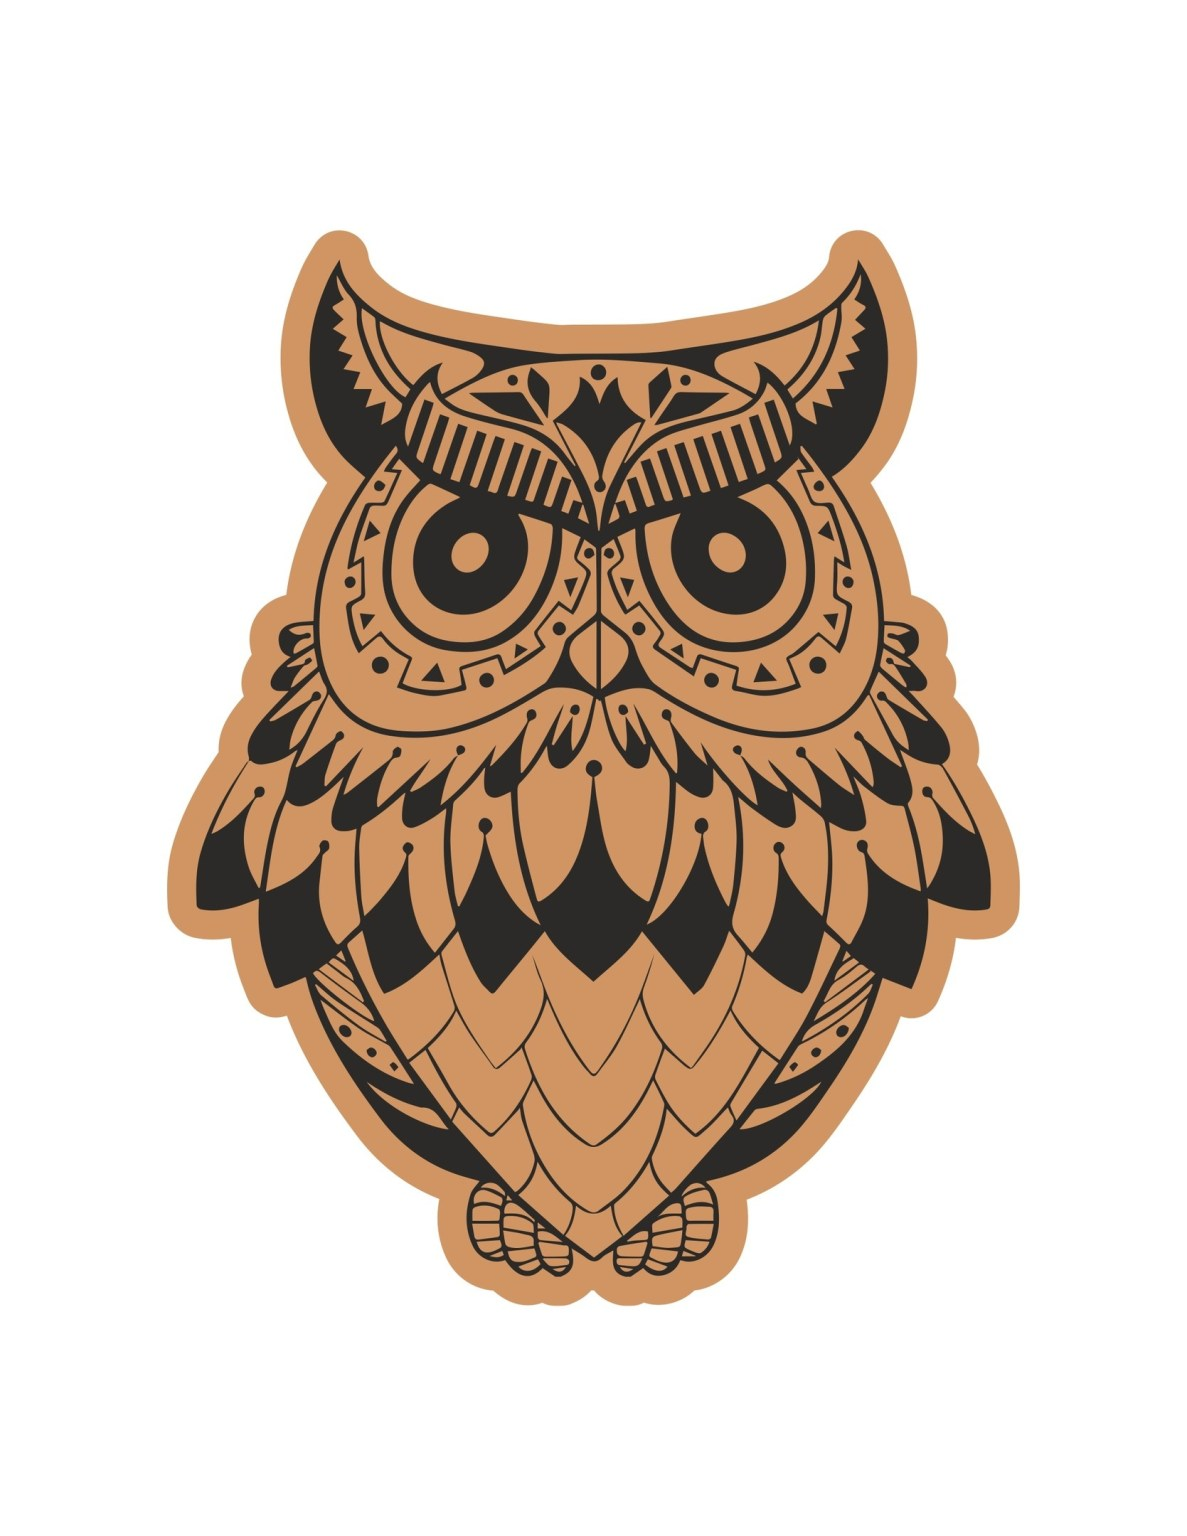 Angry Owl Laser Cut Engraving Template Free CDR Vectors Art